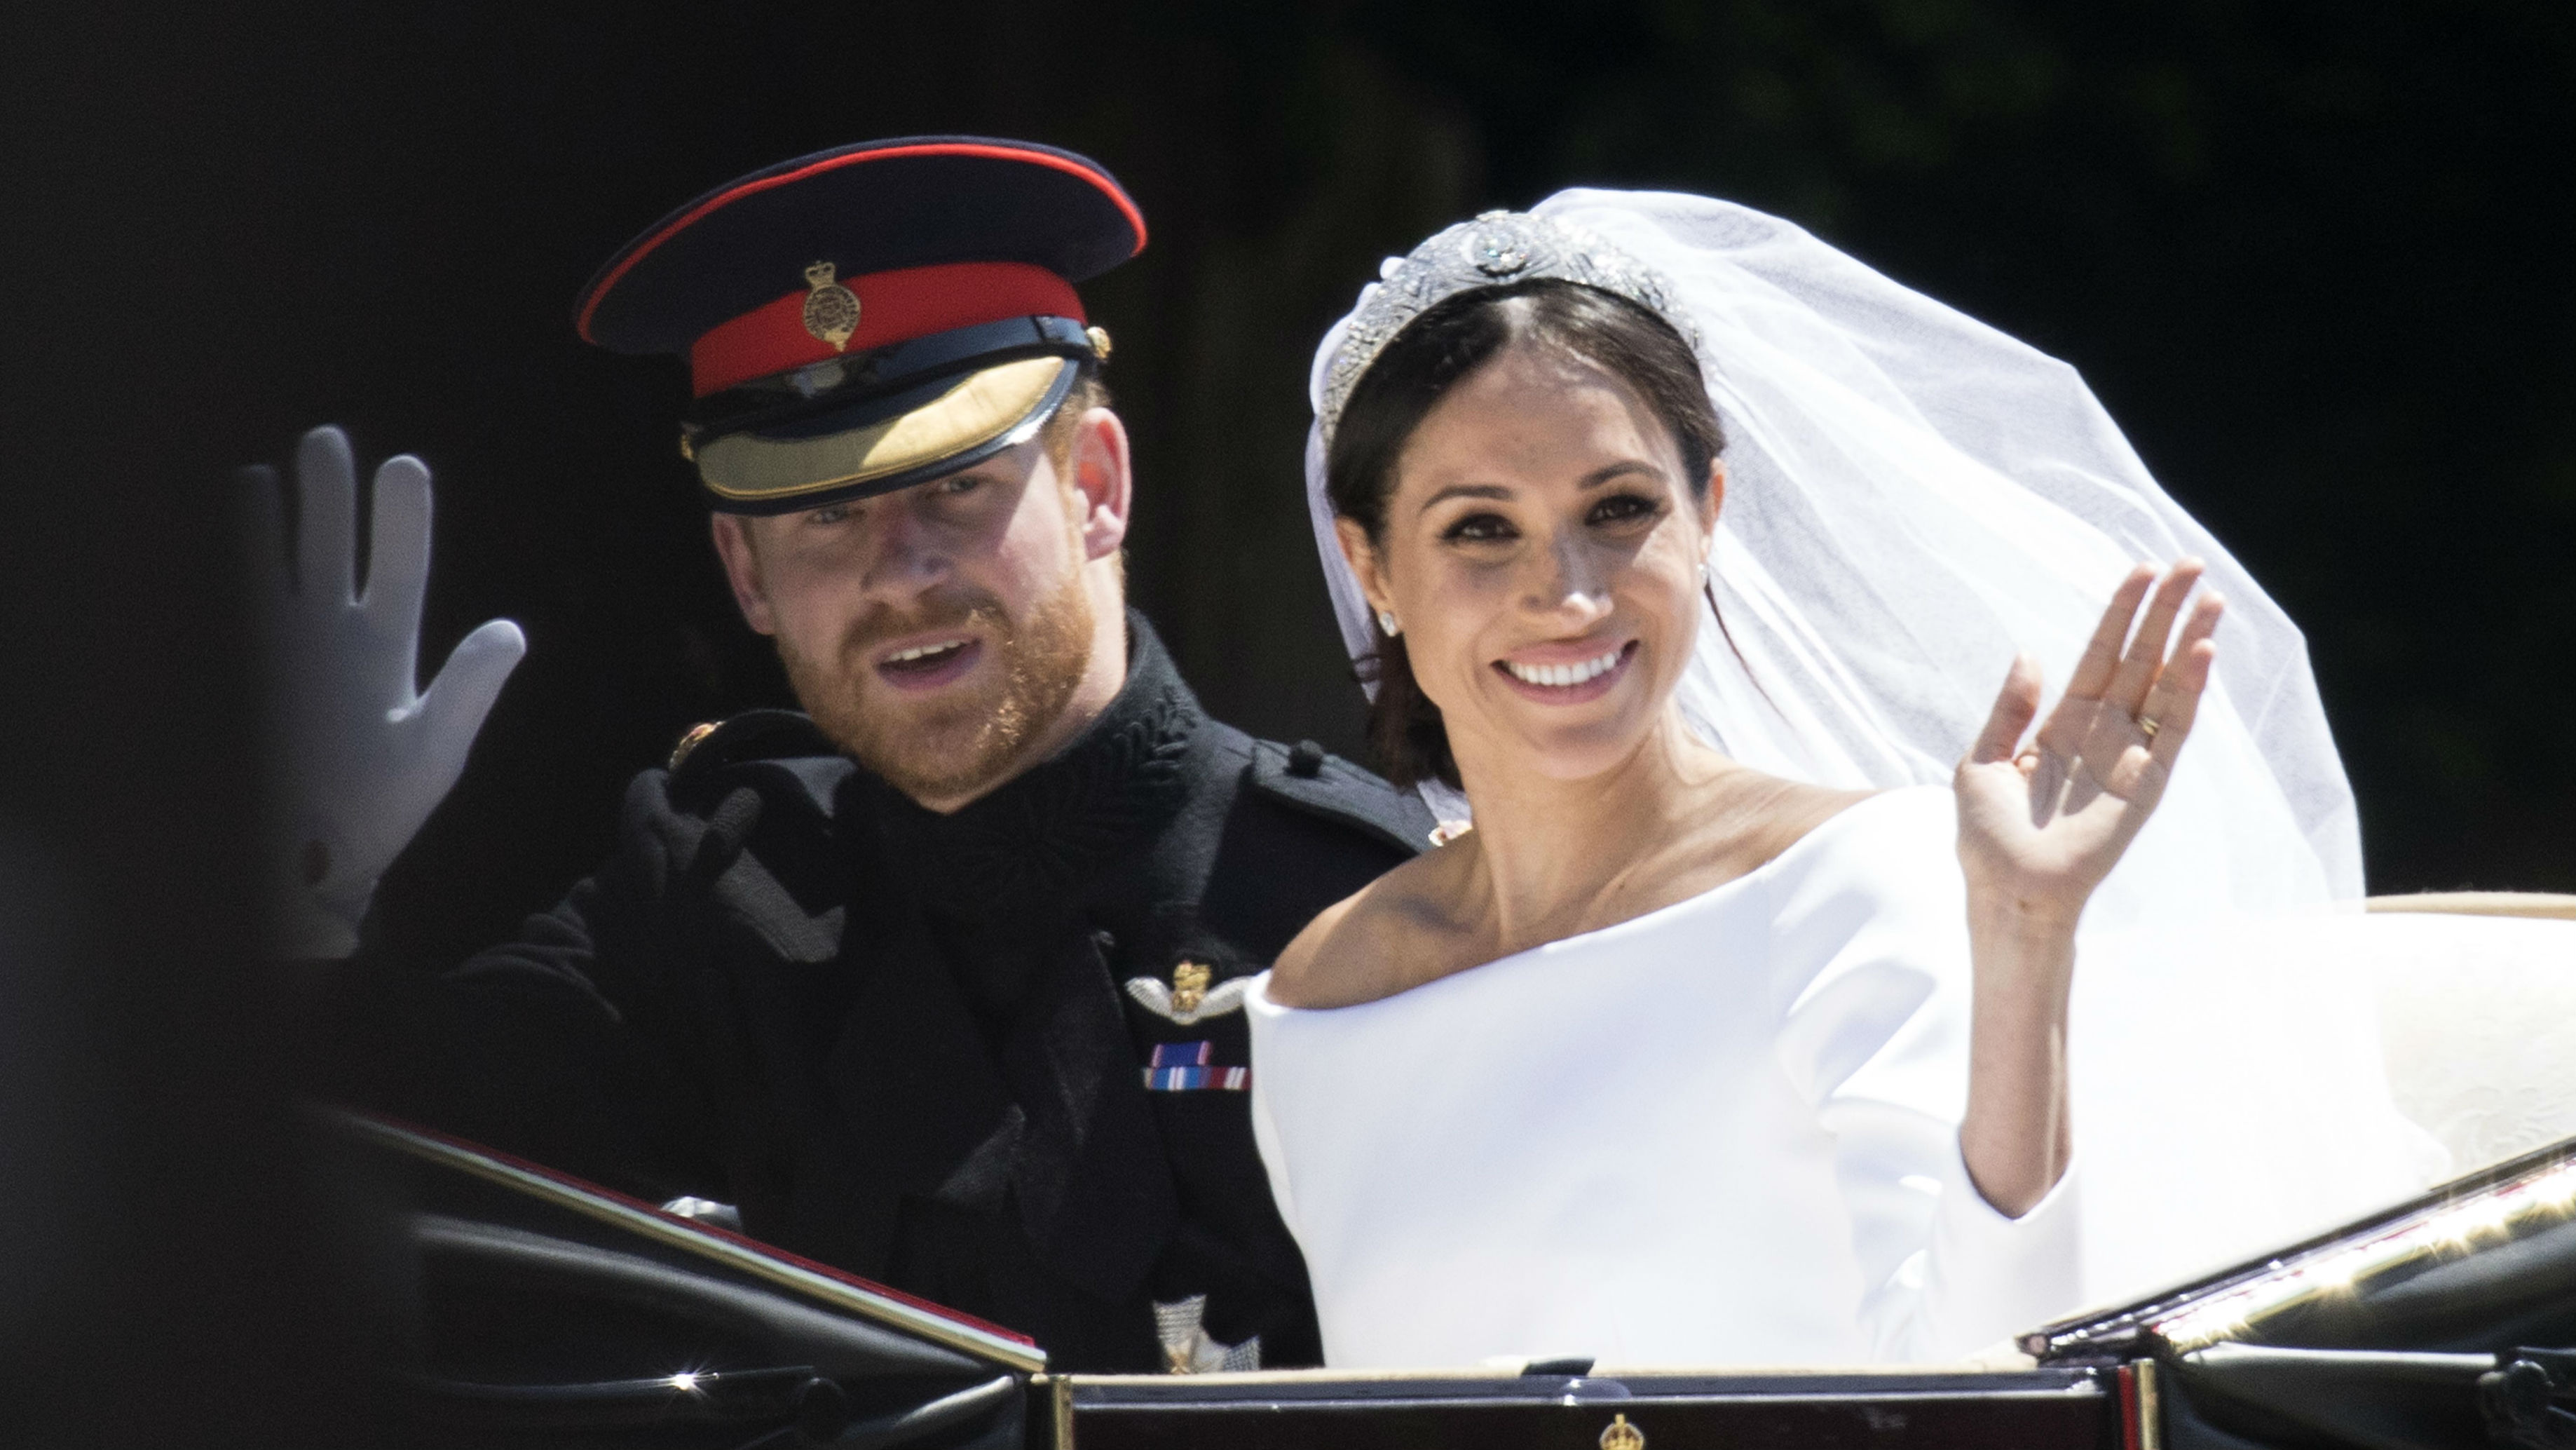 Duke and Duchess of Sussex cut off from Royal Family